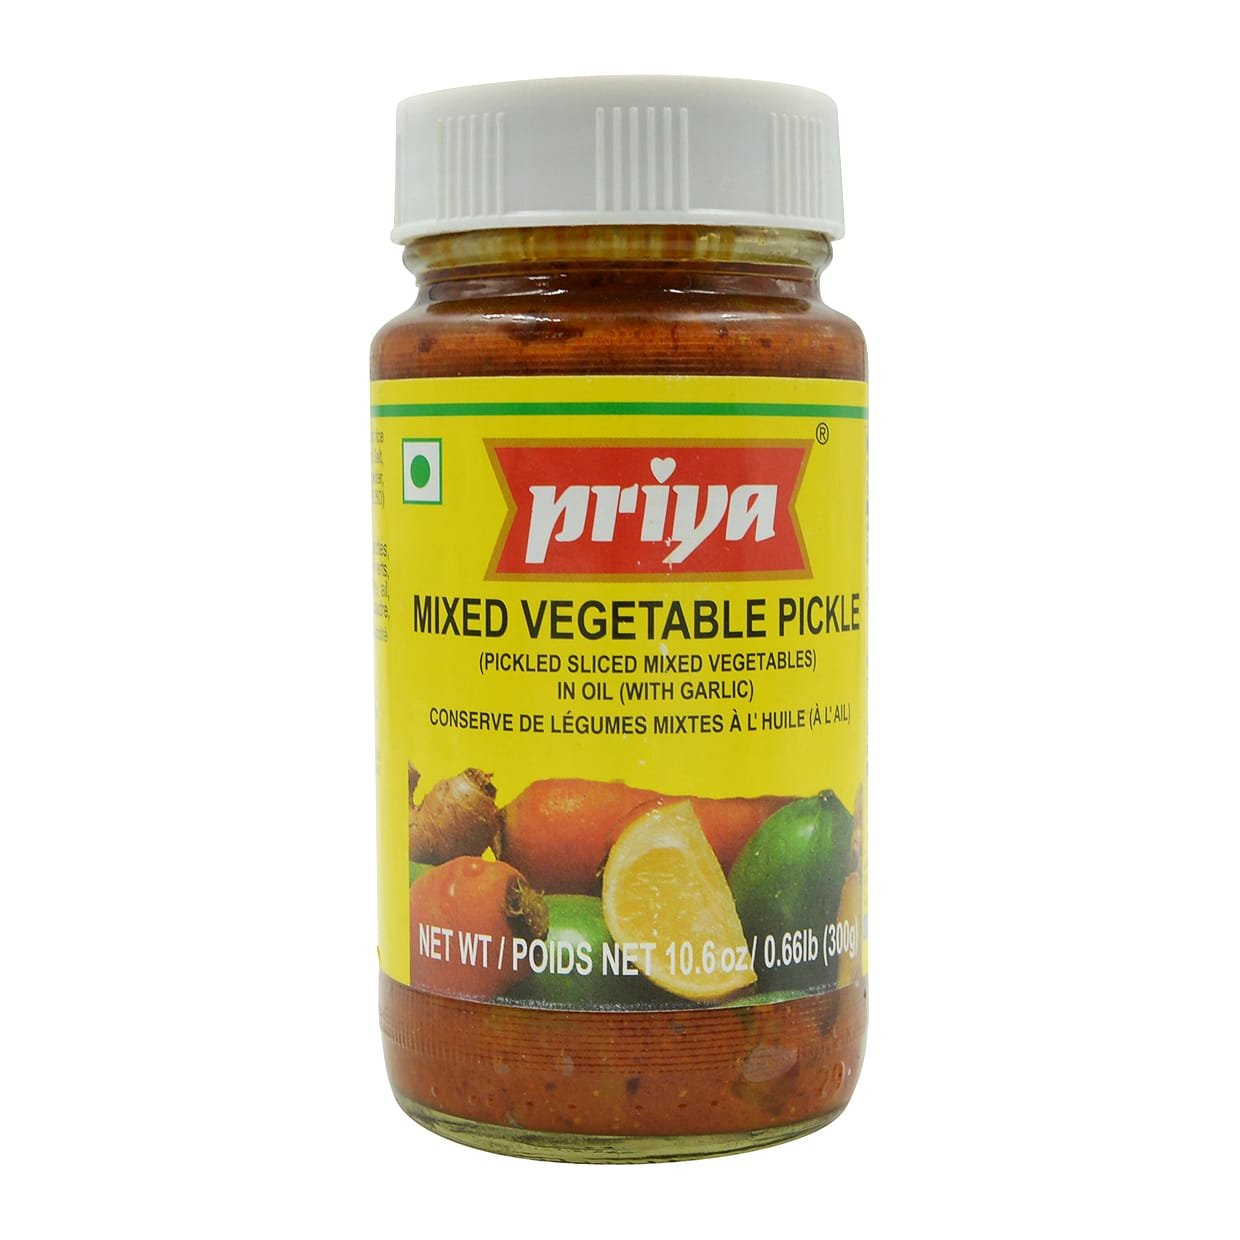 Priya Mixed Vegetable Pickle 10.6 Oz